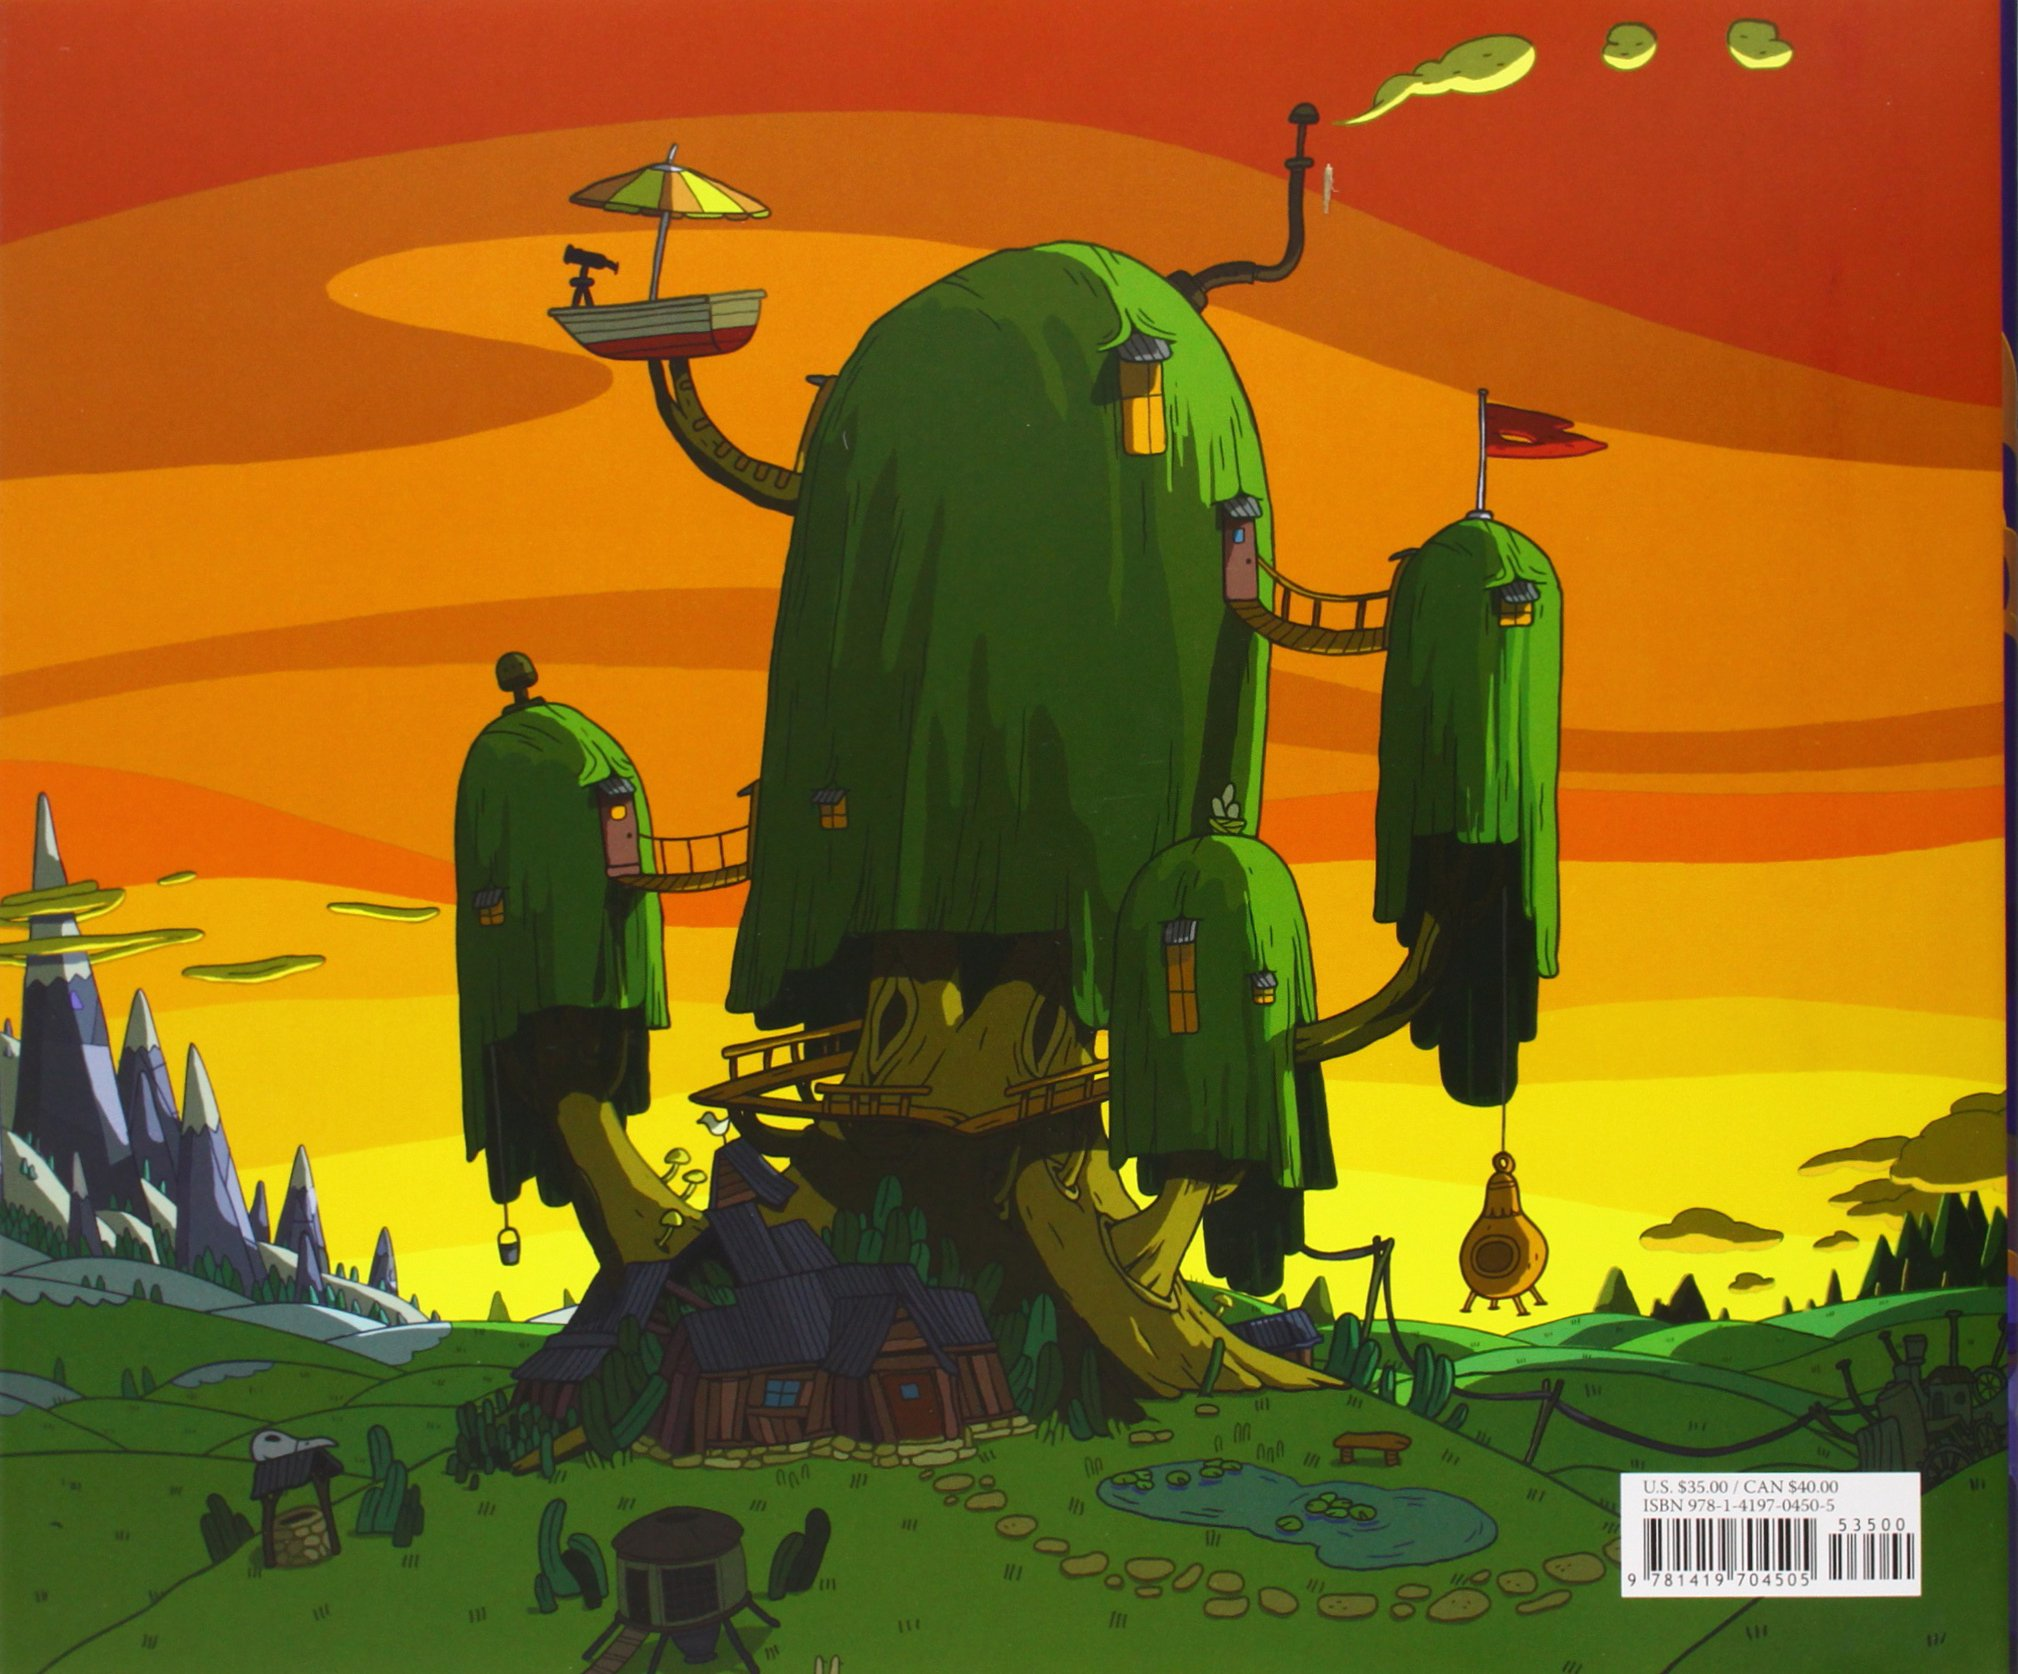 Adventure time the art of ooo chris mcdonnell guillermo del adventure time the art of ooo chris mcdonnell guillermo del toro 9781419704505 amazon books voltagebd Image collections